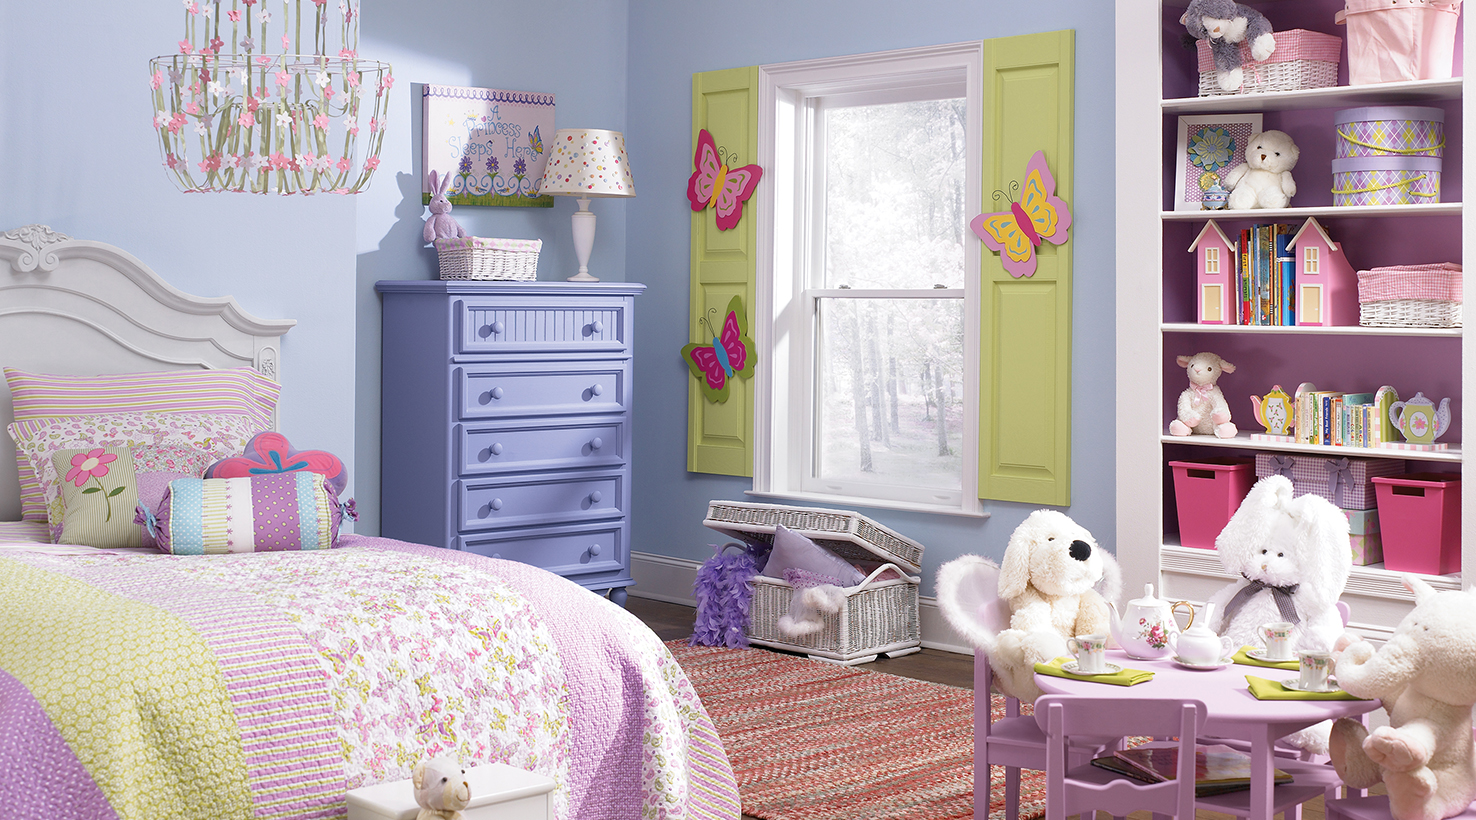 Pinterest Girls Kids Rooms With Wood Wallpaper Girls Room In Pastel Pink Purple And Green Interiors By